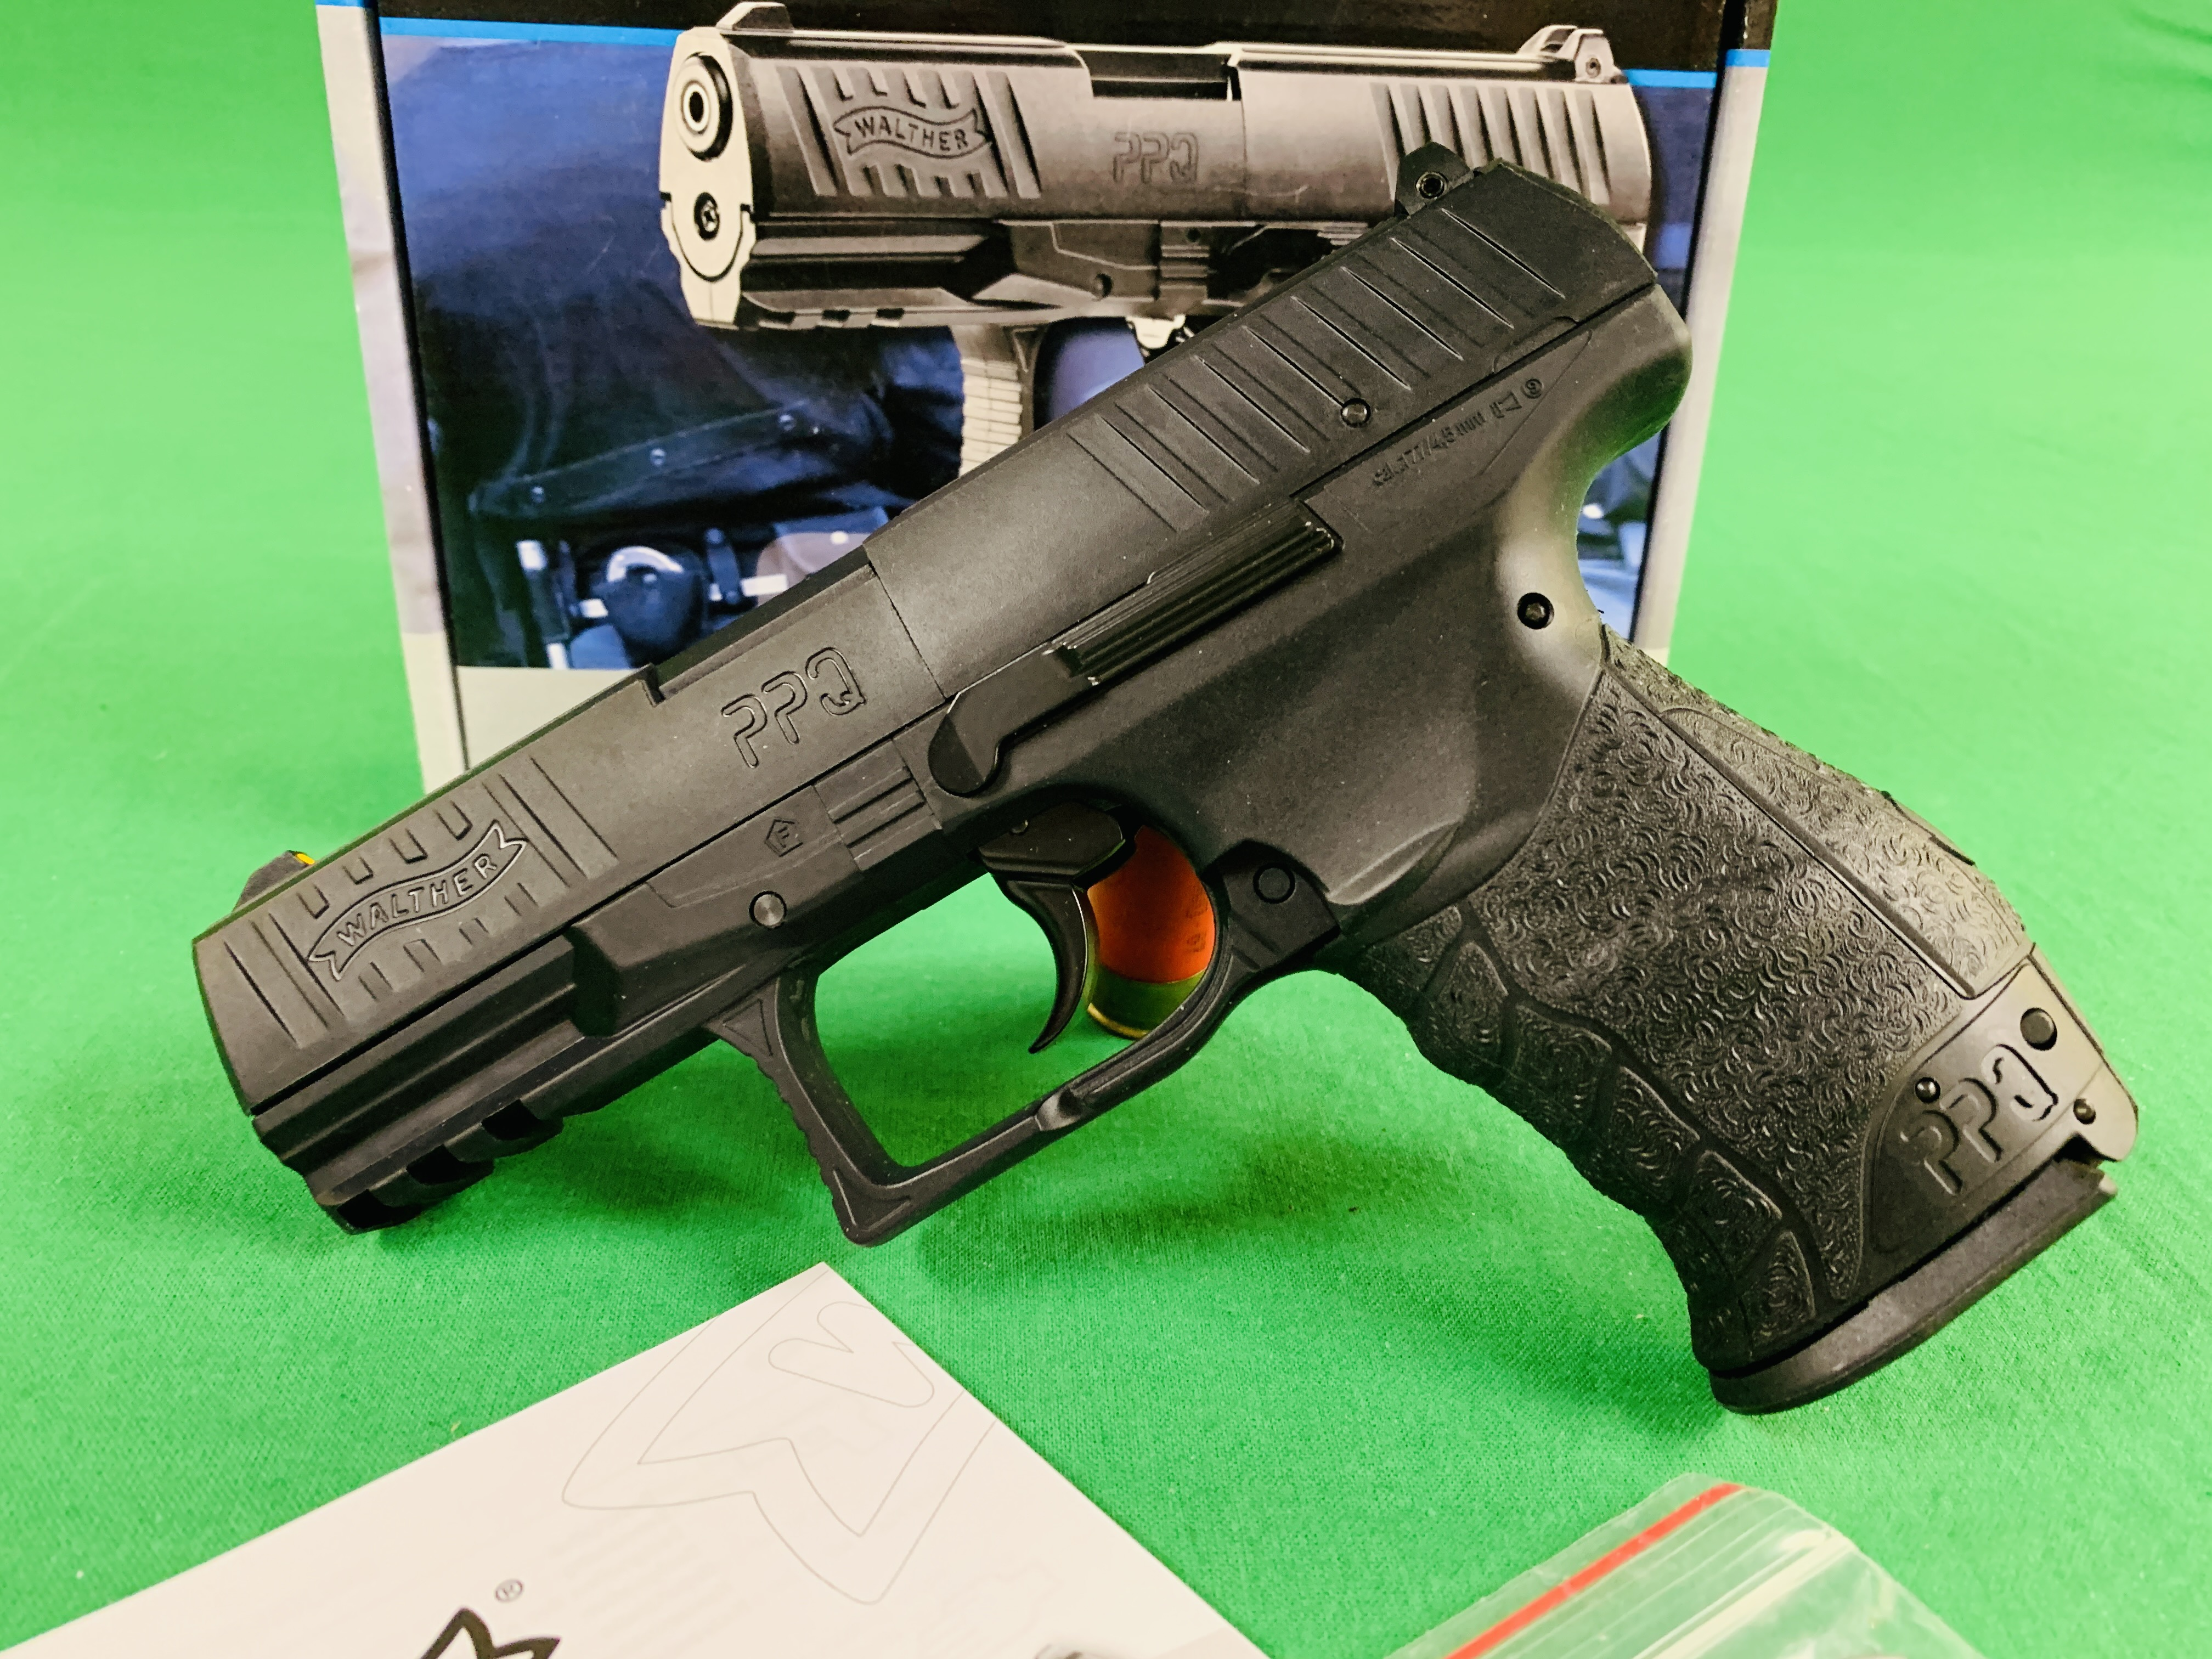 A WALTHER PPQ . - Image 2 of 6